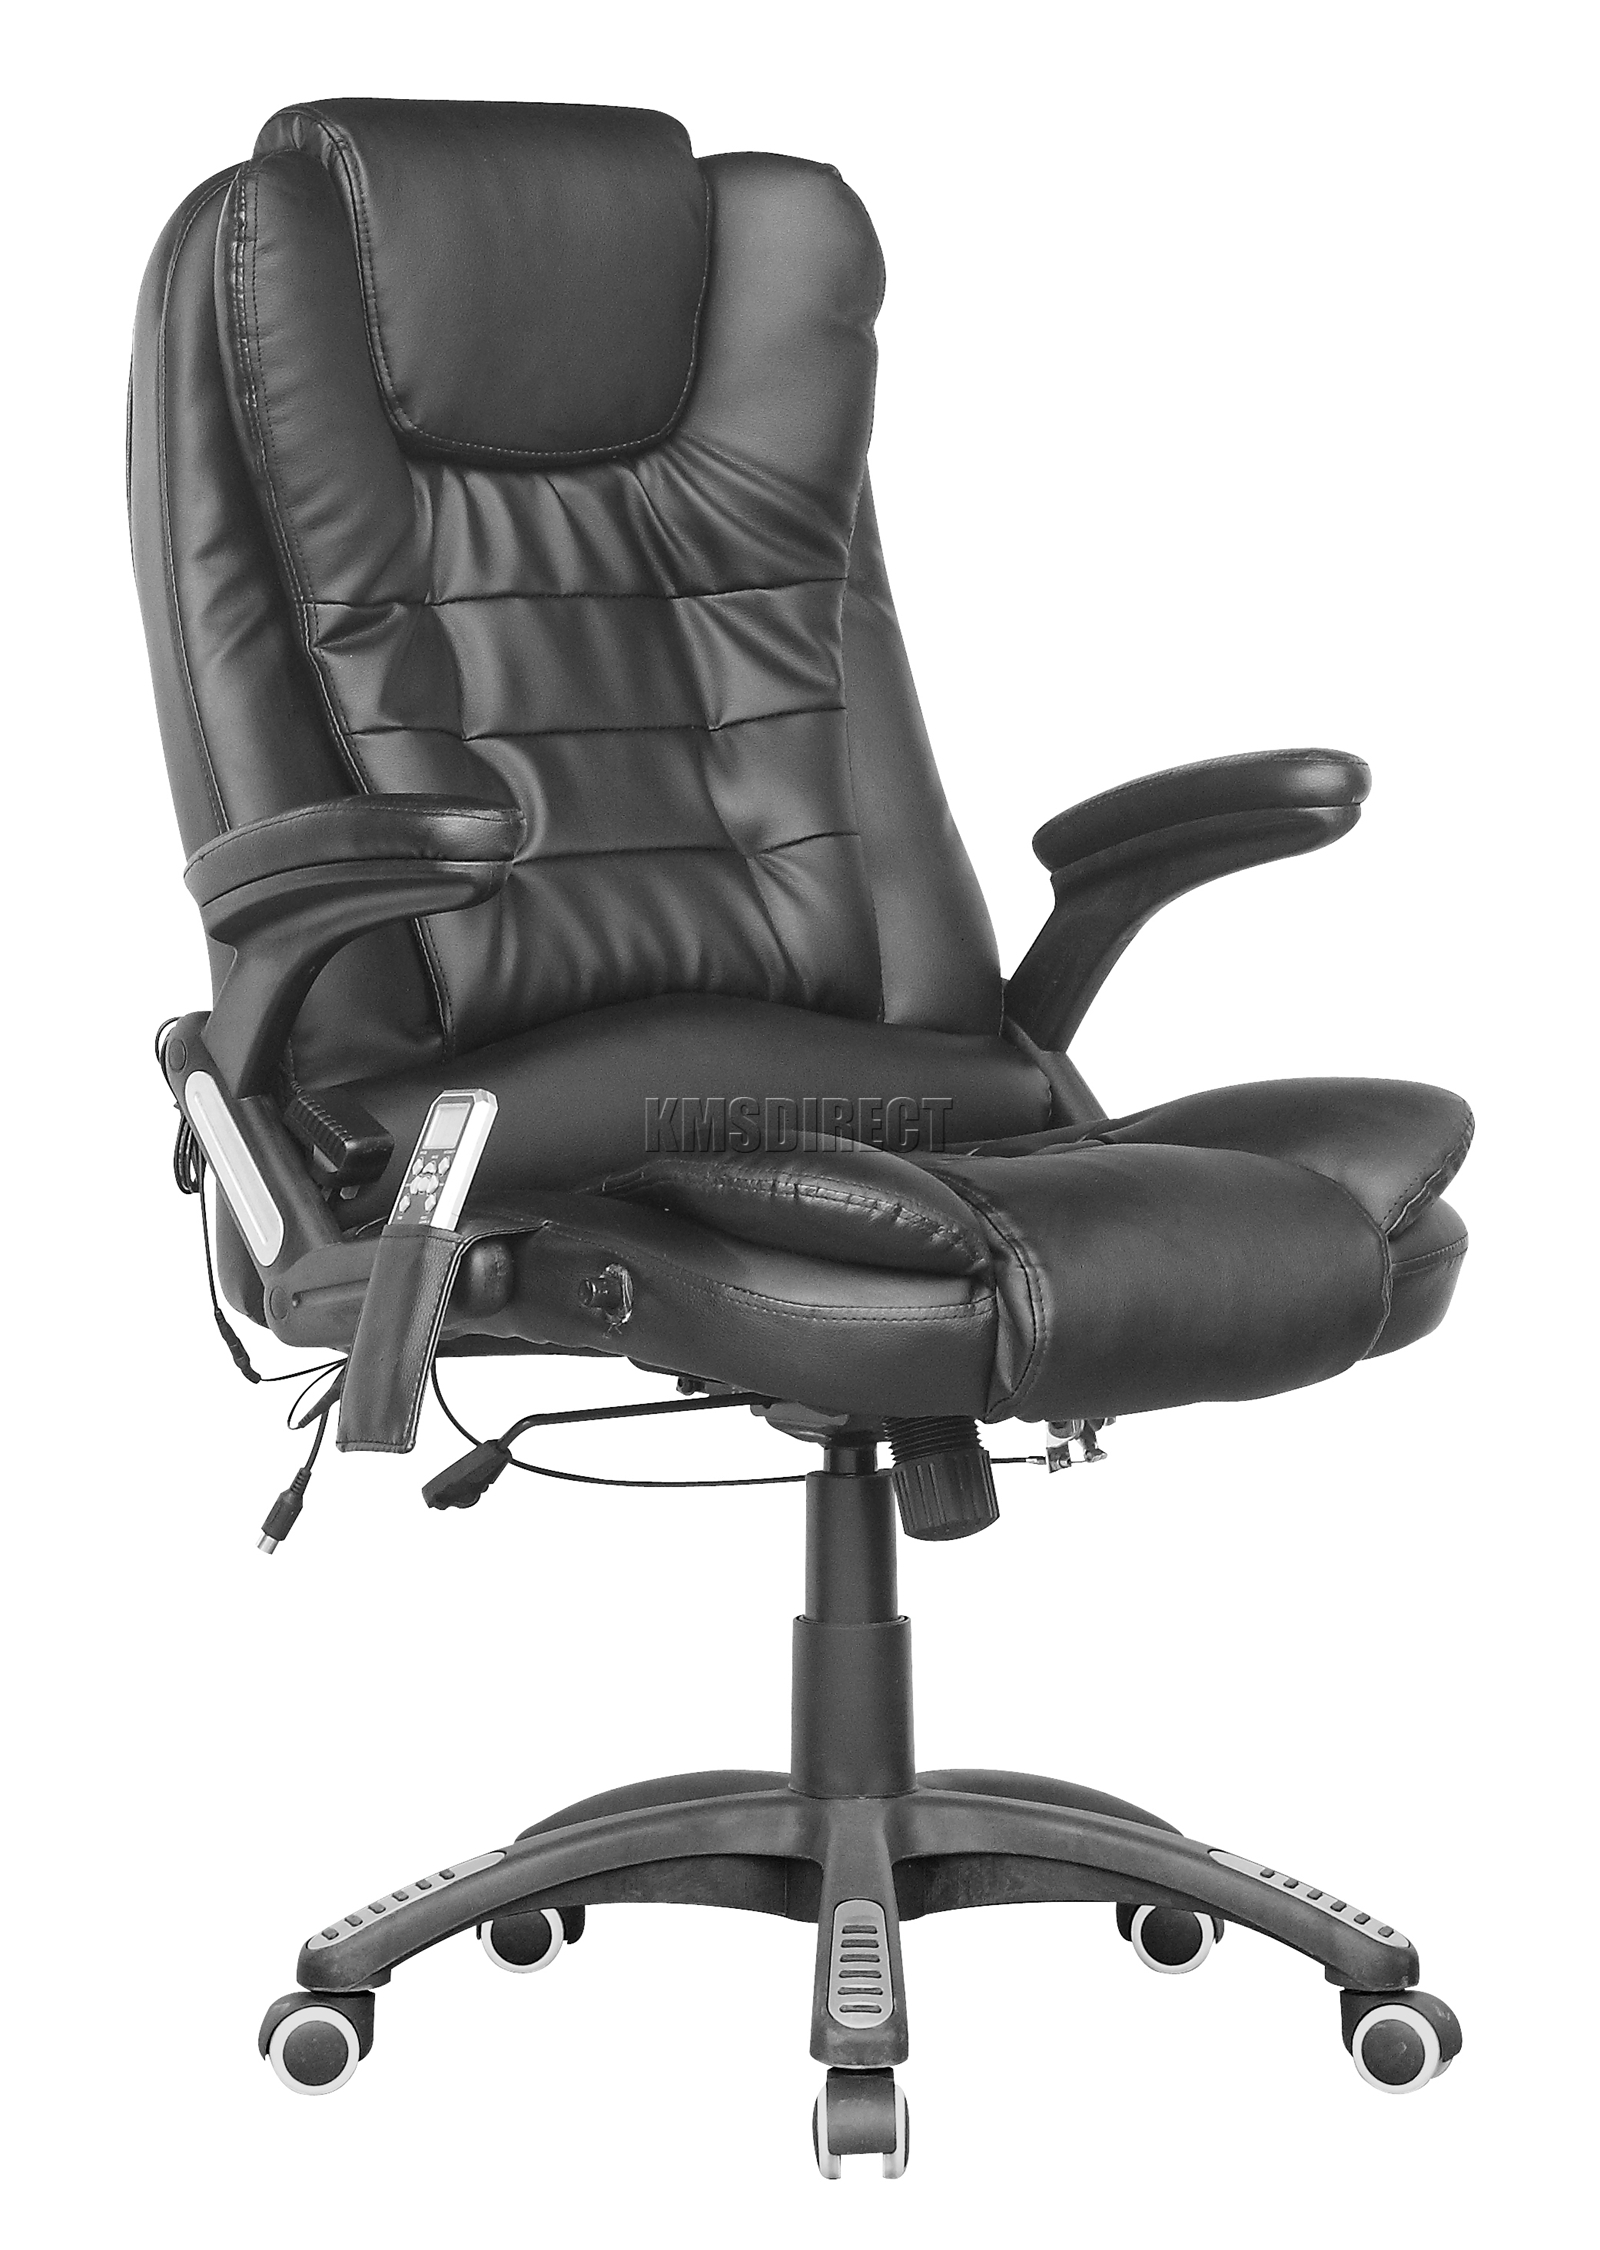 FoxHunter 6 Point Massage fice puter Chair Luxury Leather